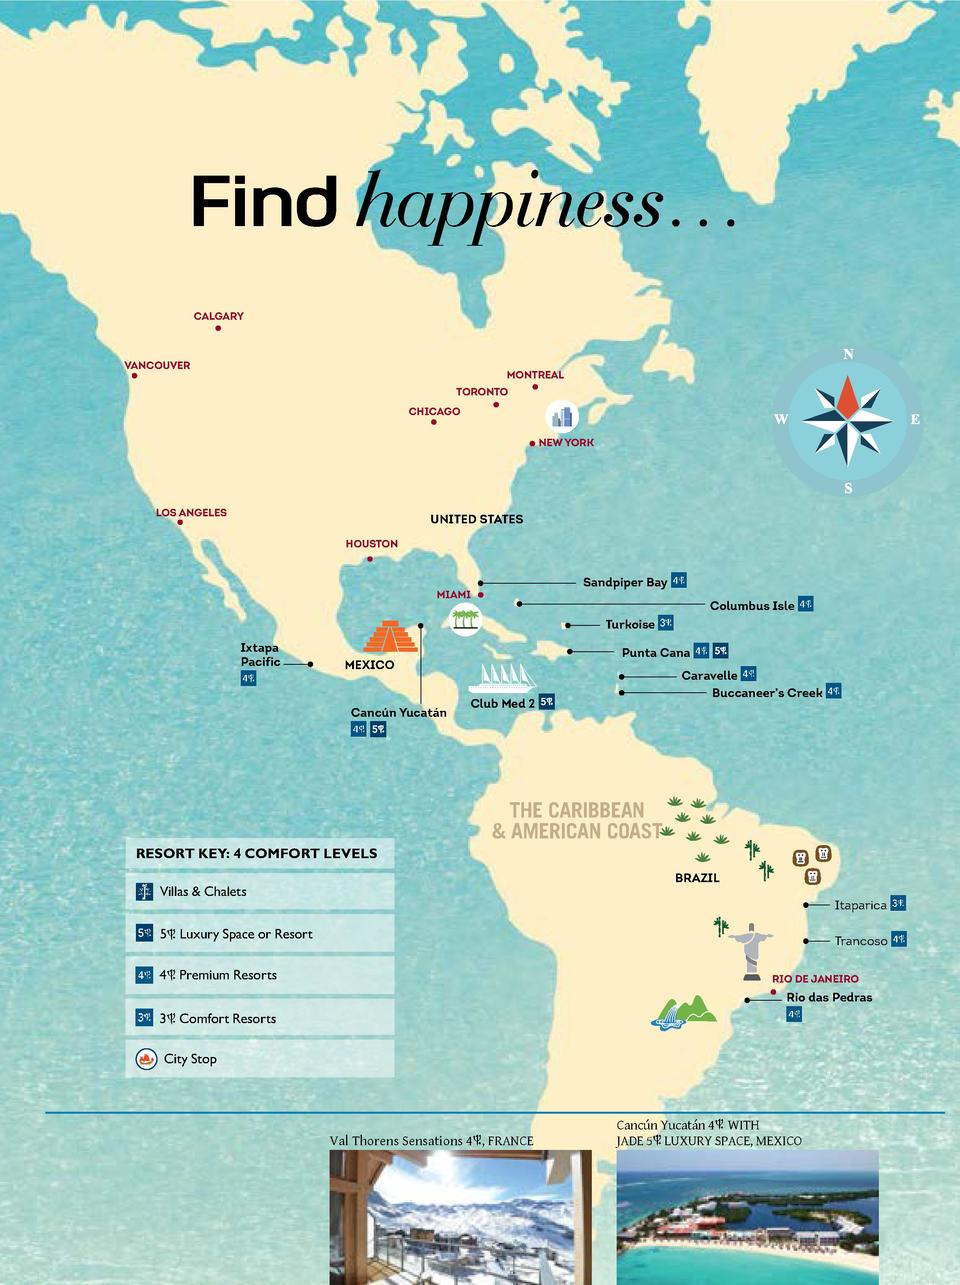 Find happiness    CALGARY  VANCOUVER  MONTREAL TORONTO CHICAGO NEW YORK  LOS ANGELES  UNITED STATES HOUSTON  Sandpiper Bay...